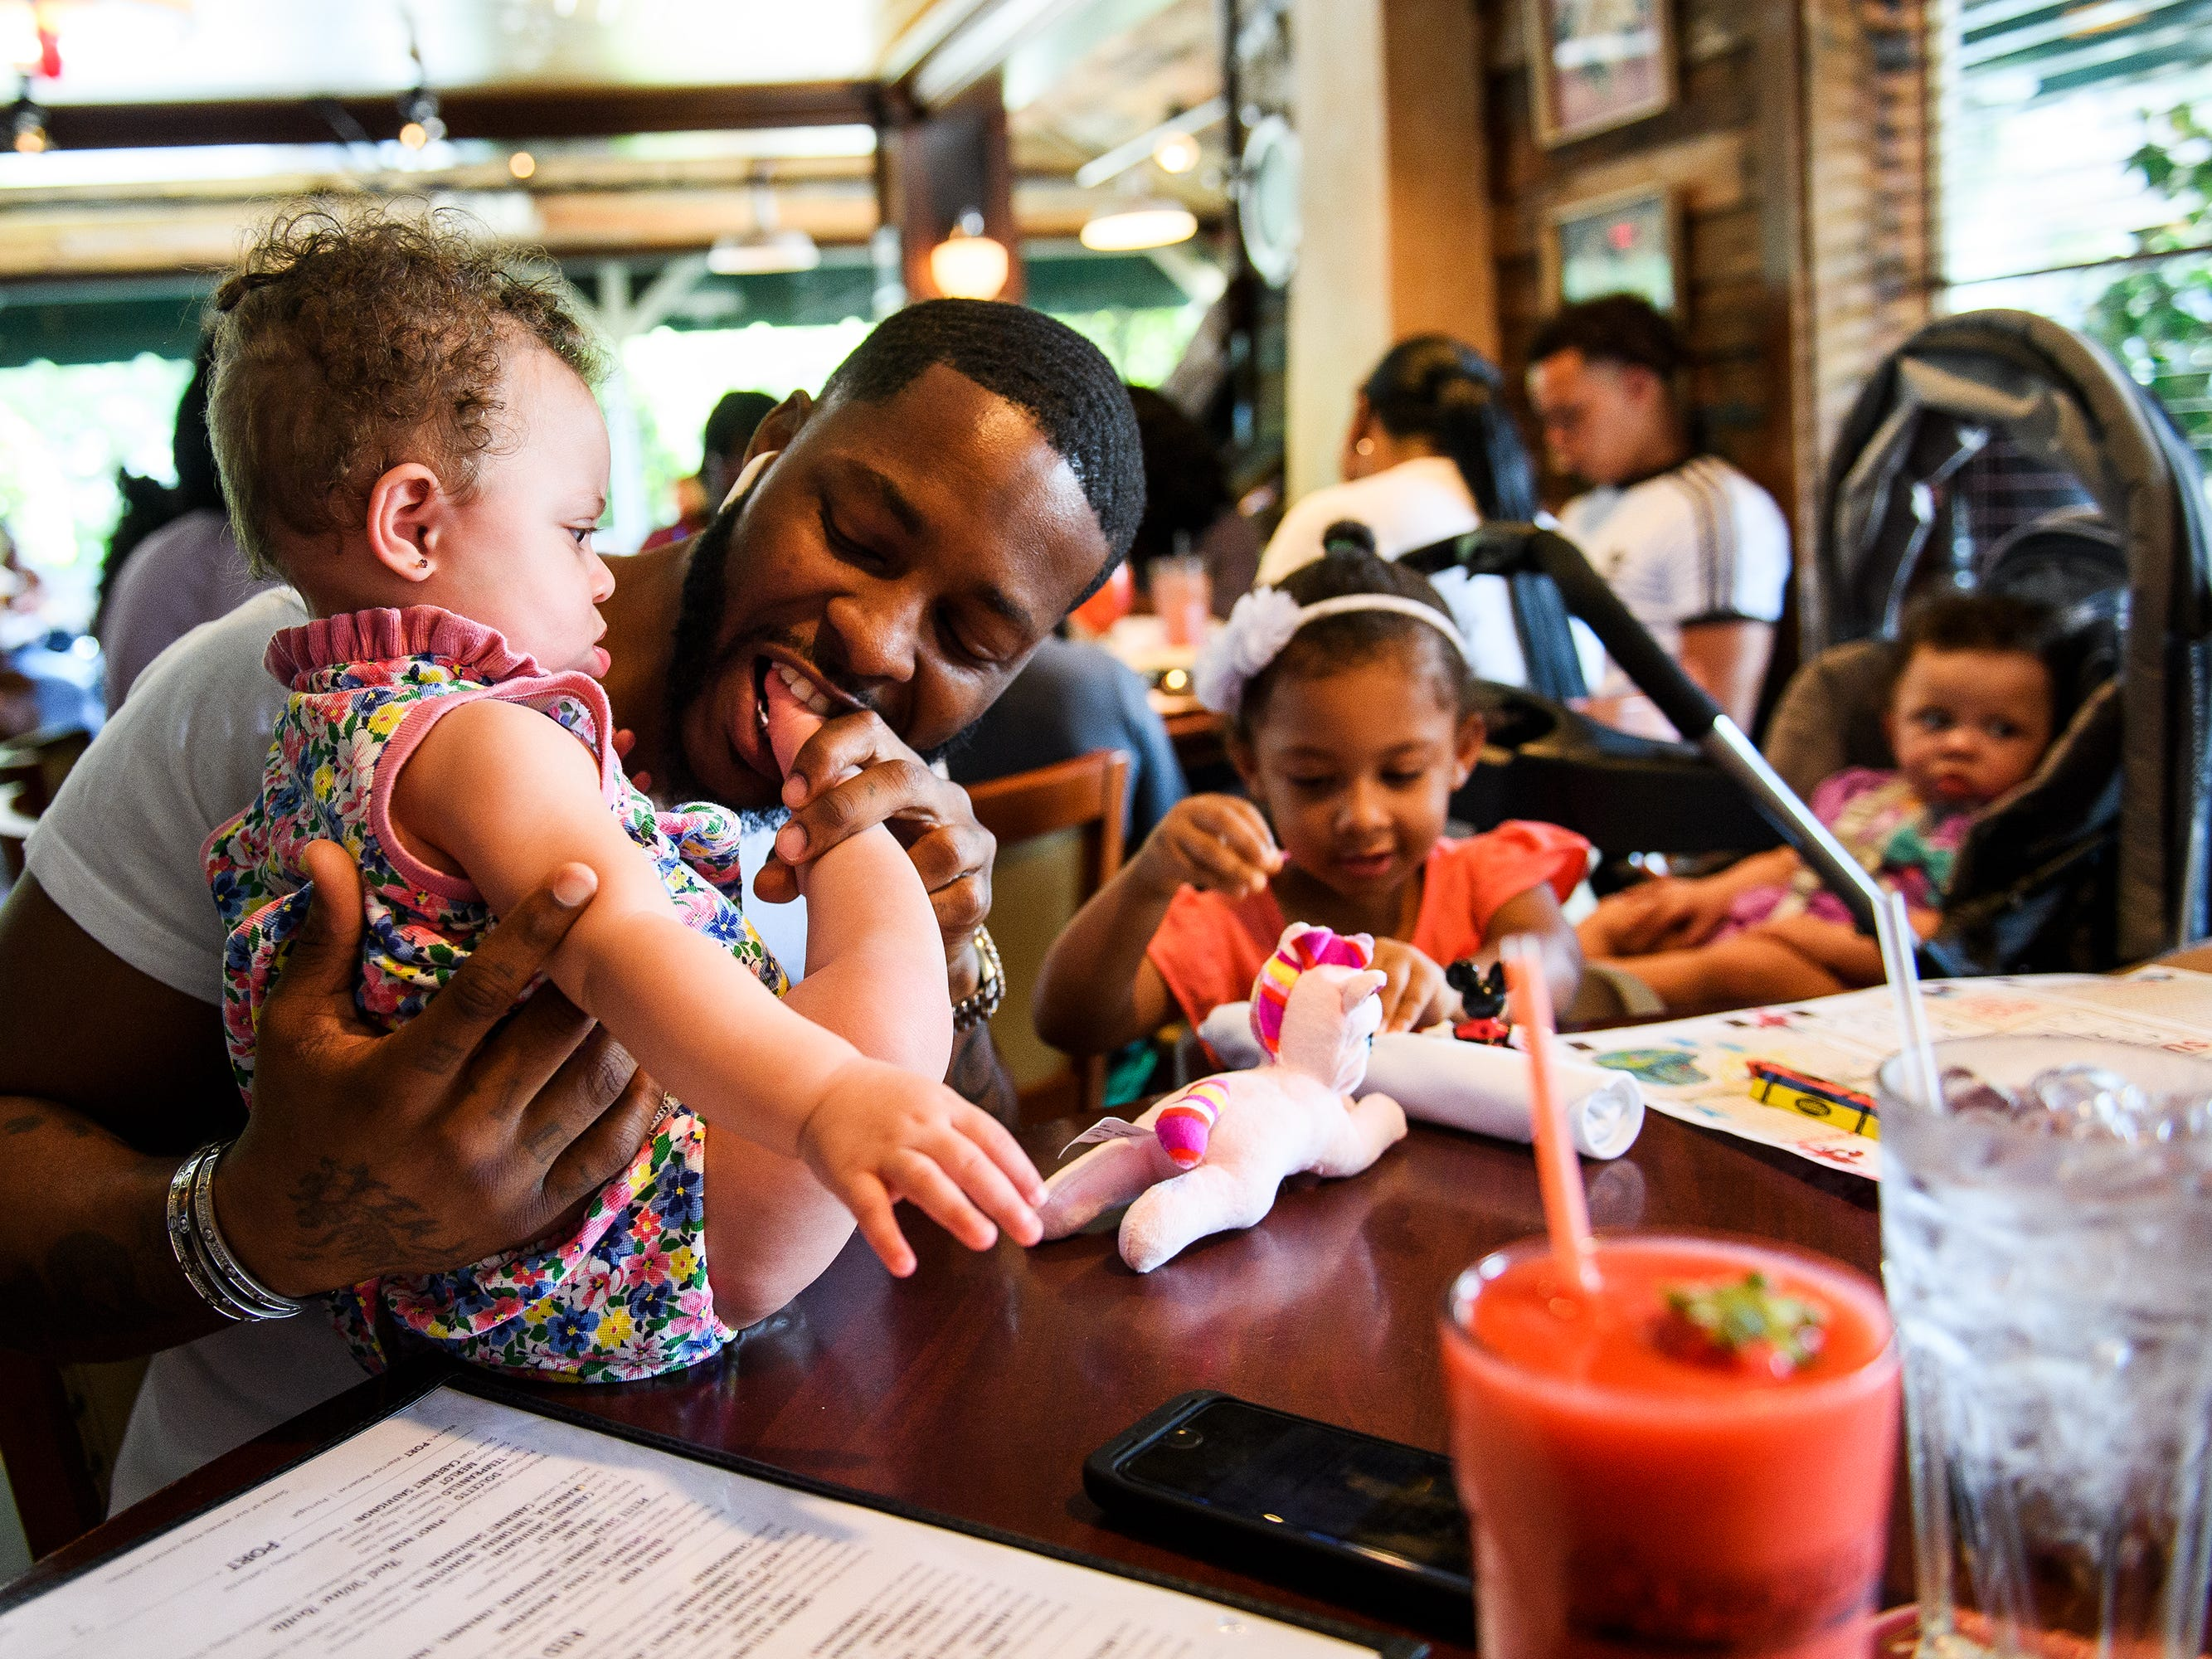 Johnnie Grant plays with his nine-month-old daughter, Rayna, while out to eat with his family in Atlanta. Grant had money taken by cops in South Carolina despite showing them receipts and other business paperwork proving the cash came from his job.